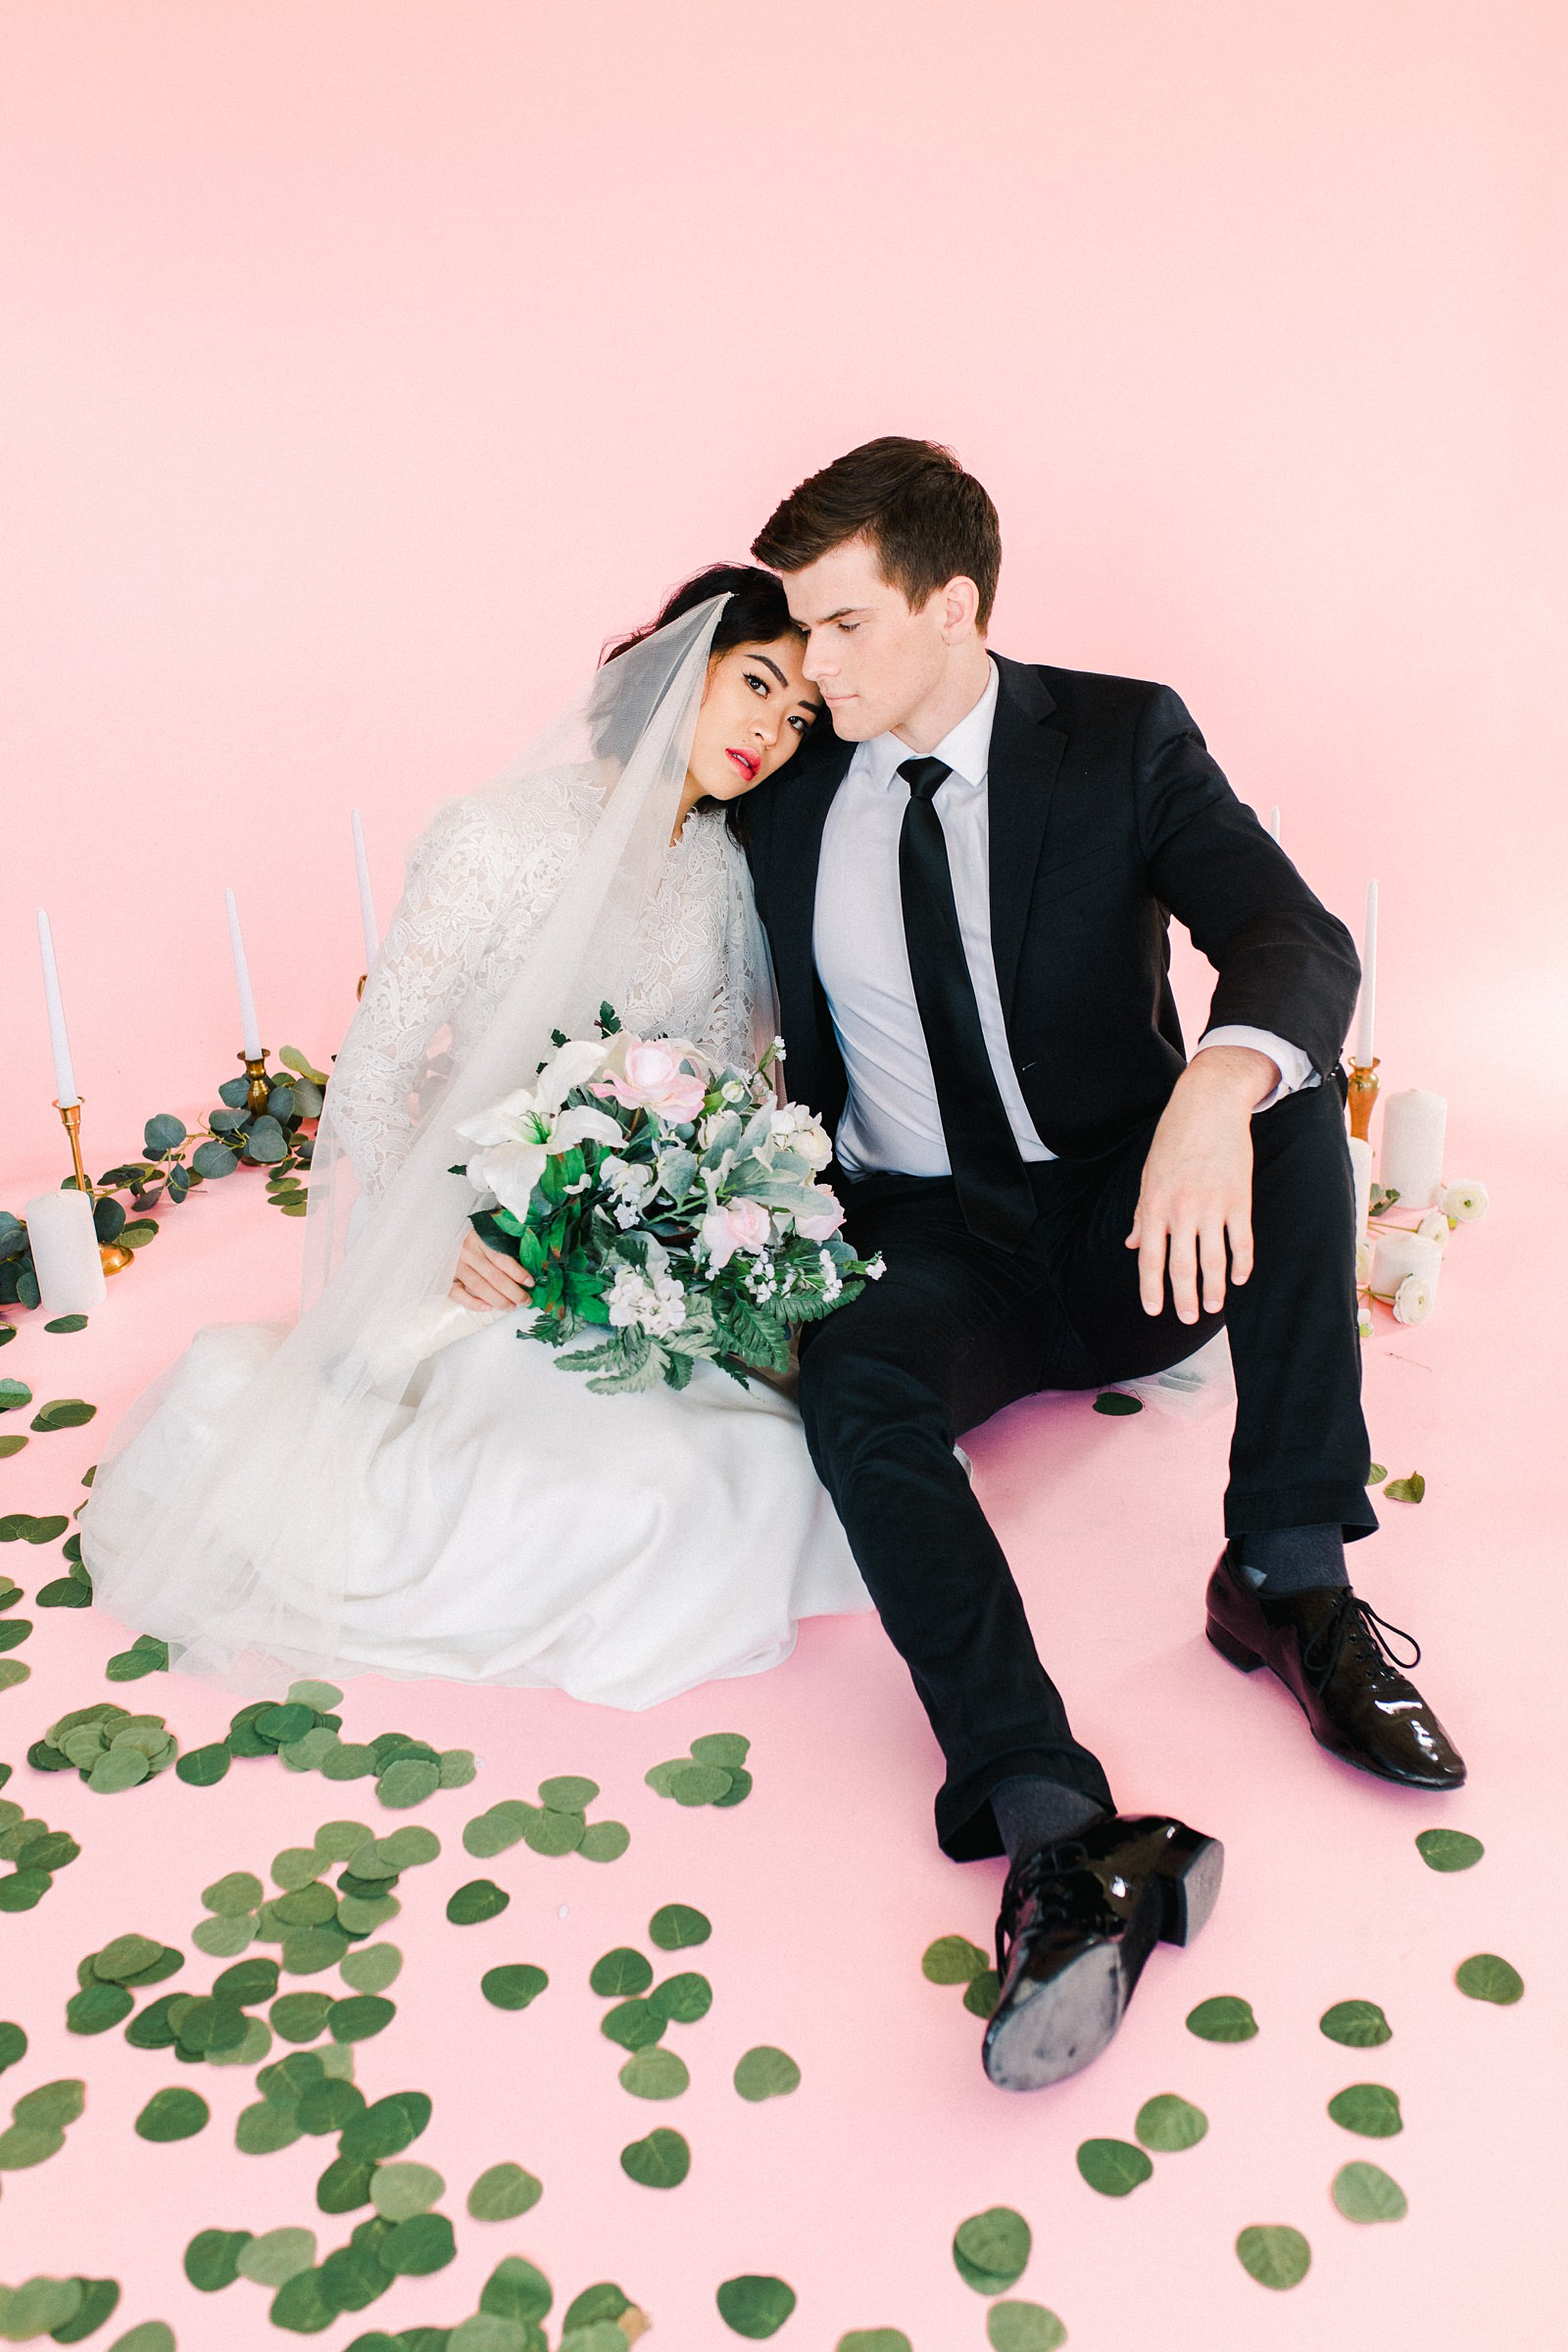 Utah wedding photography inspiration, bride in Lazaro lace v-neck wedding dress with vintage lace and long sleeves, draped long flowy veil, groom in black suit and tie